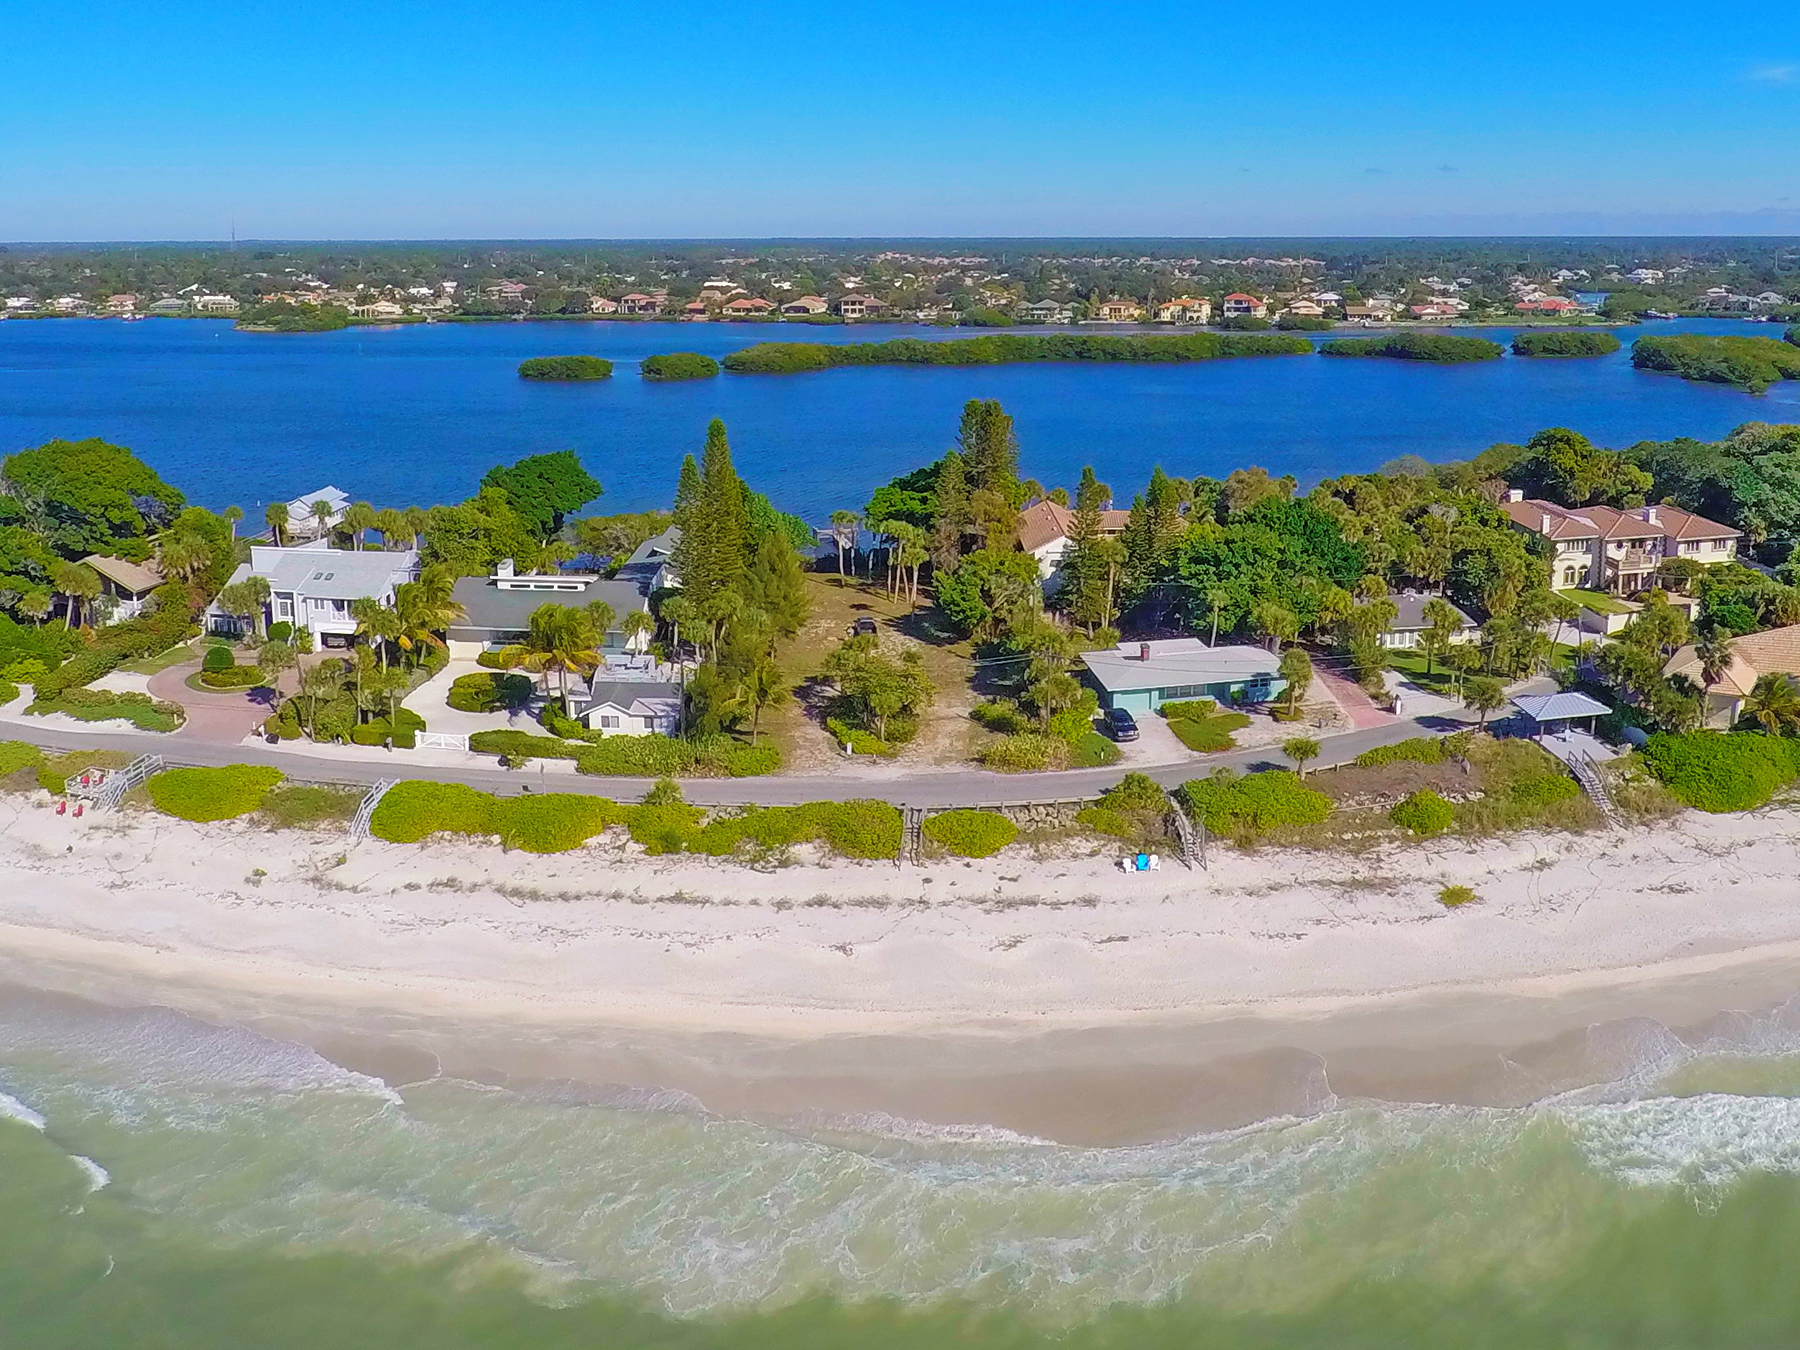 Land for Sale at CASEY KEY GULF TO BAY 3220 Casey Key Rd 4 Nokomis, Florida, 34275 United States